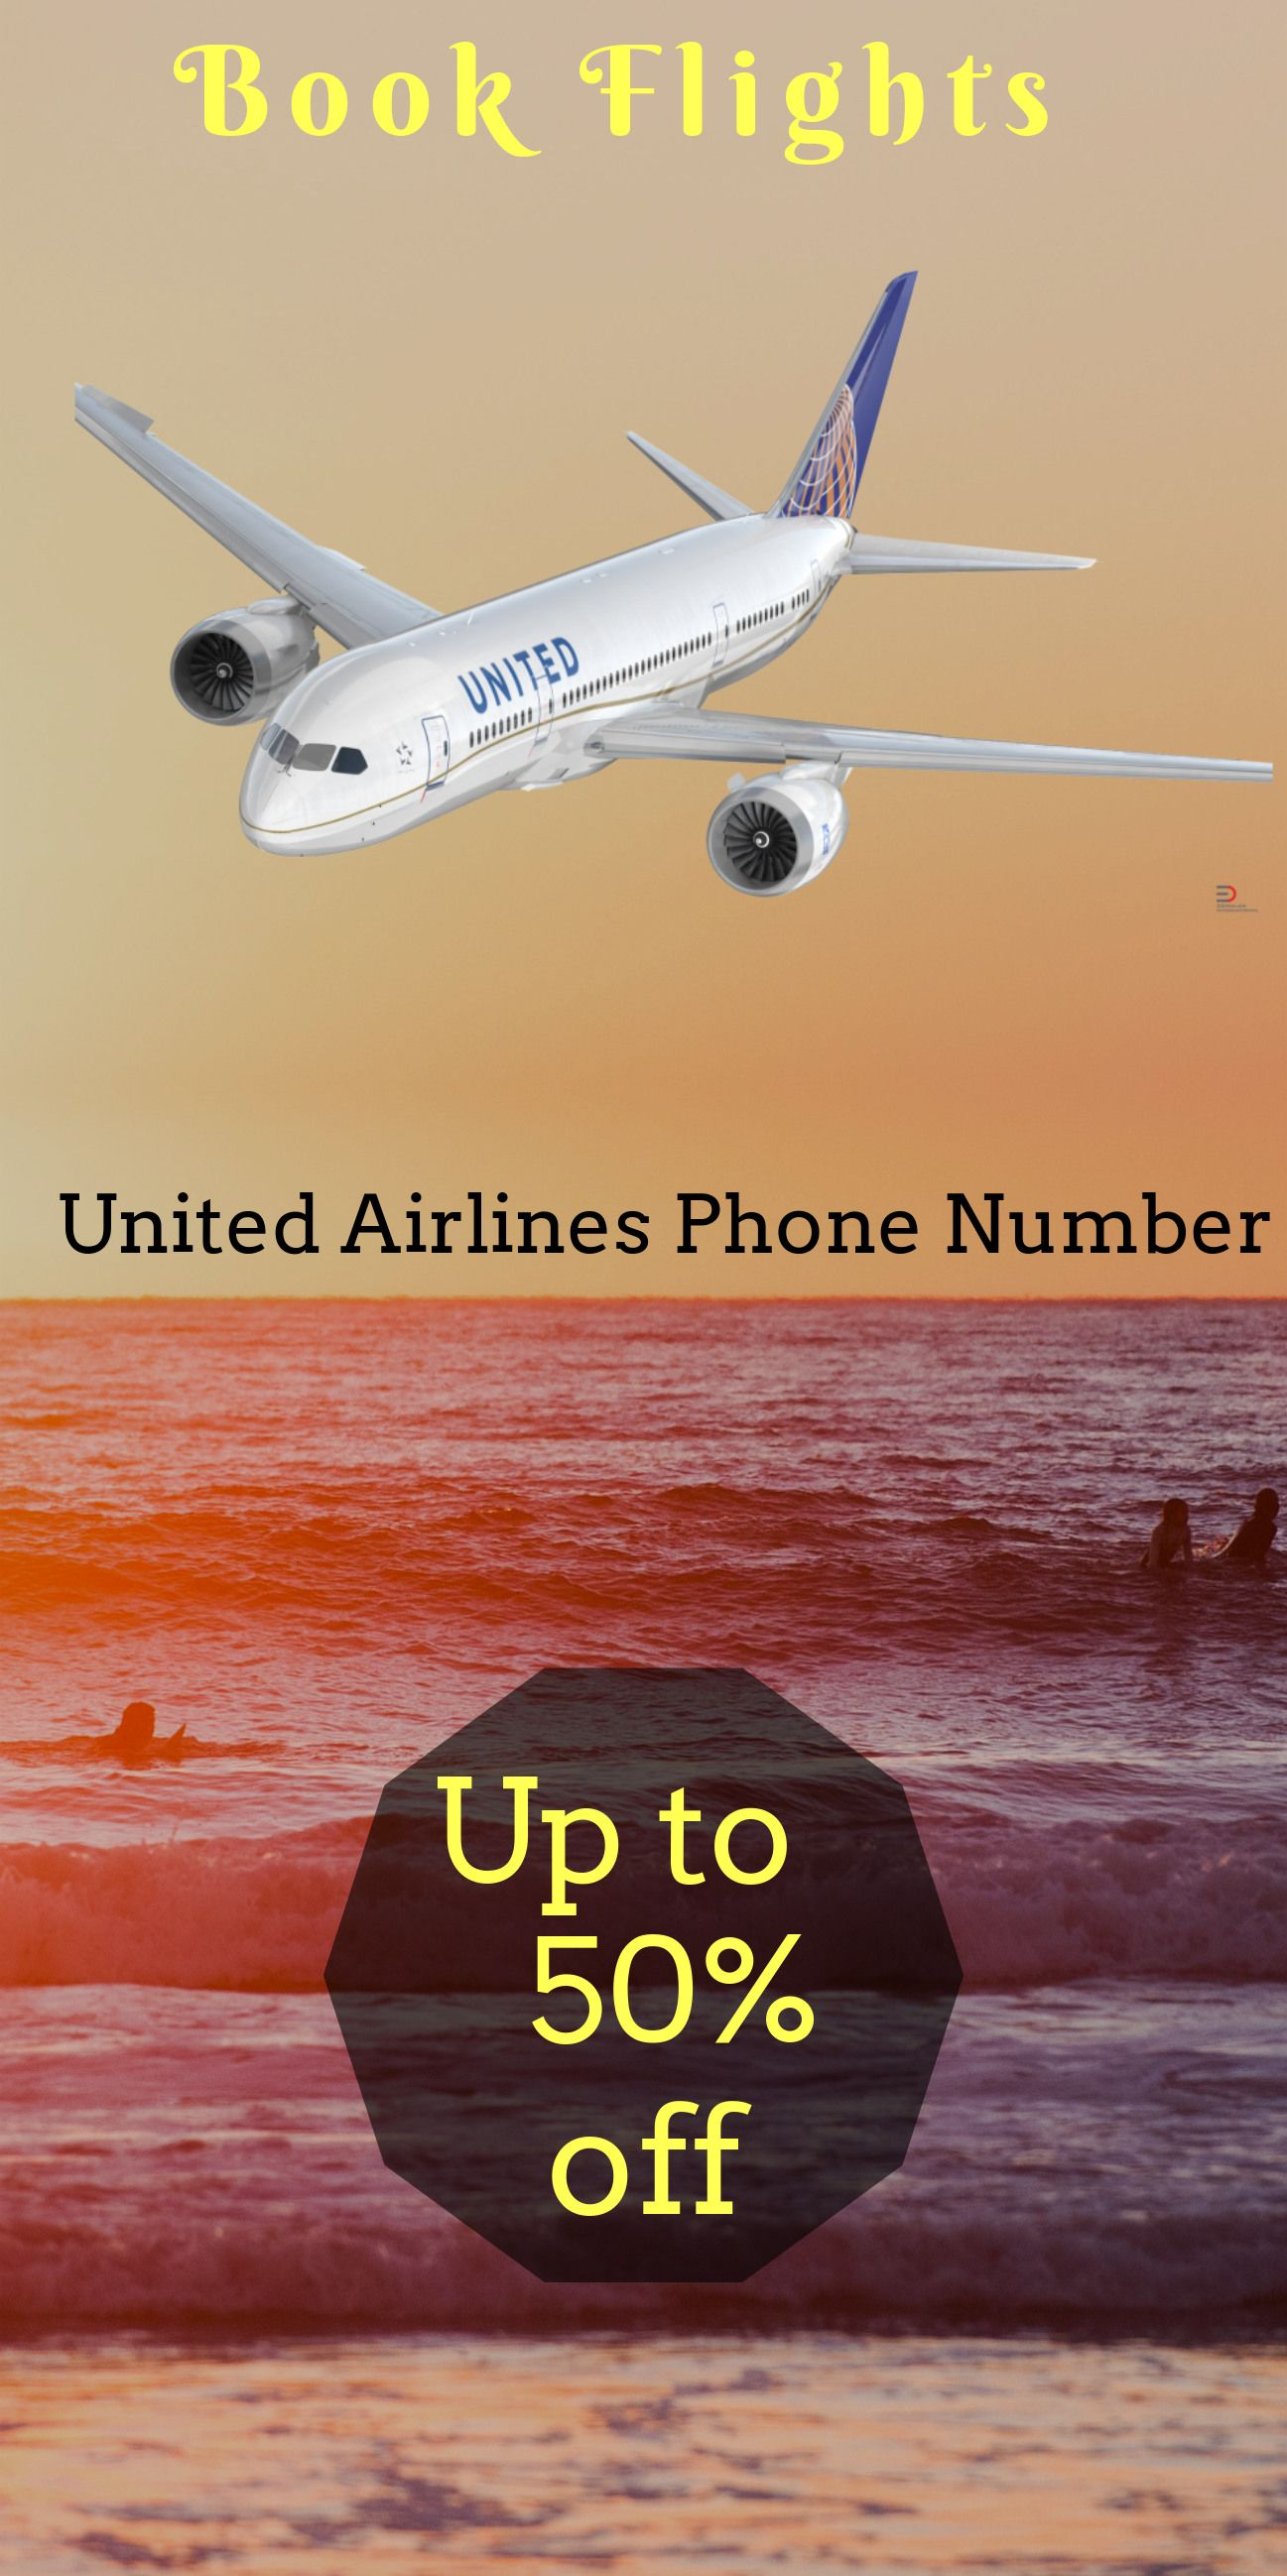 You can also dial the United Airlines Phone Number and can